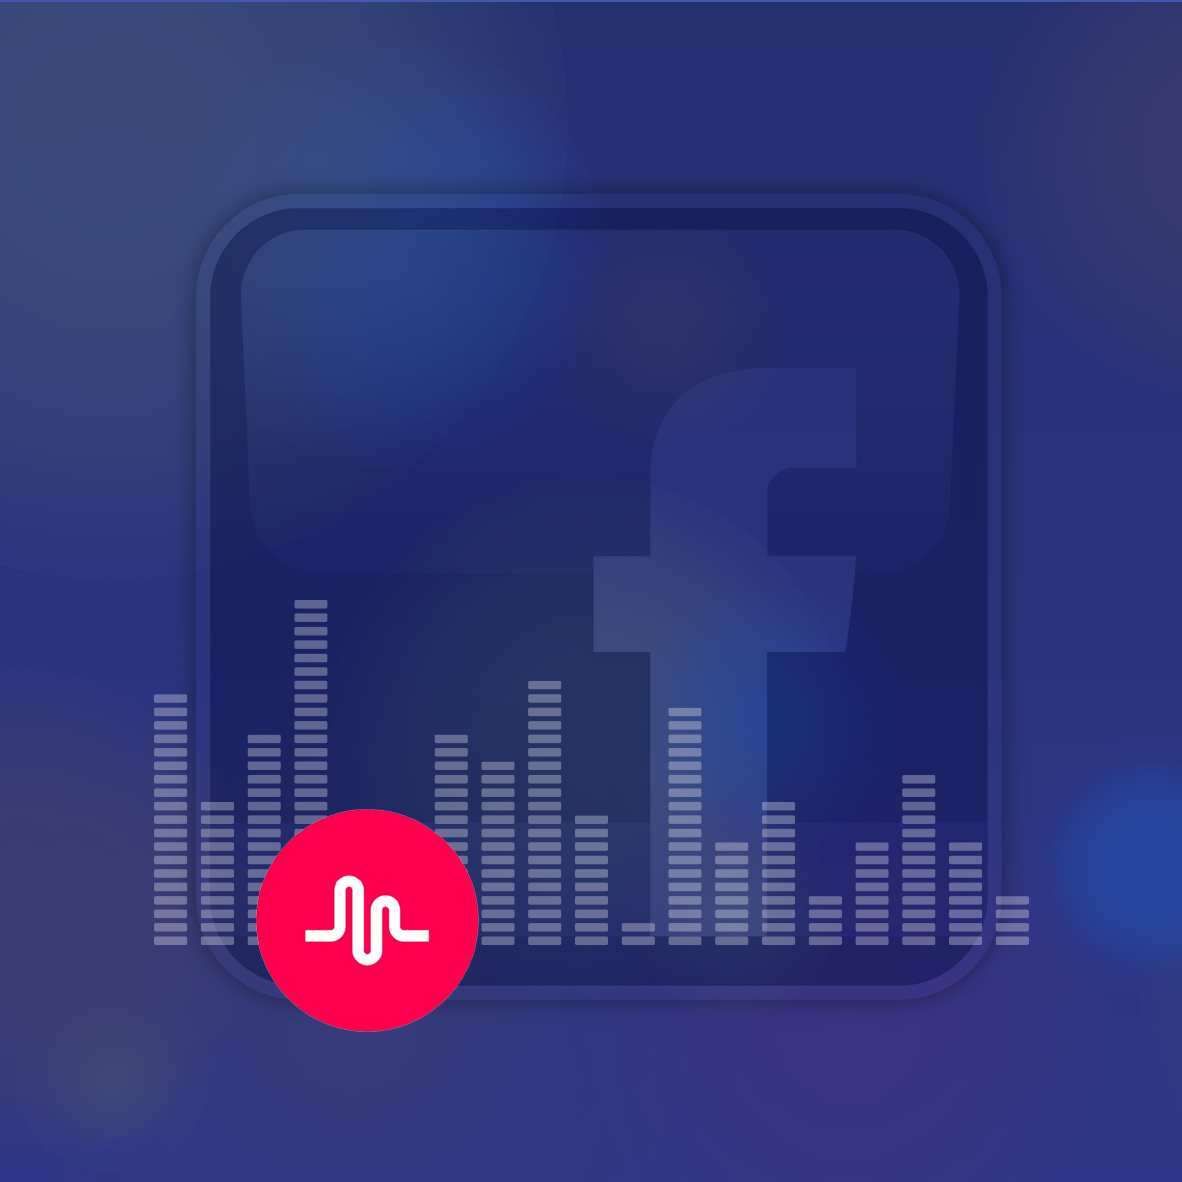 Facebook is building Lasso, a video music app where users